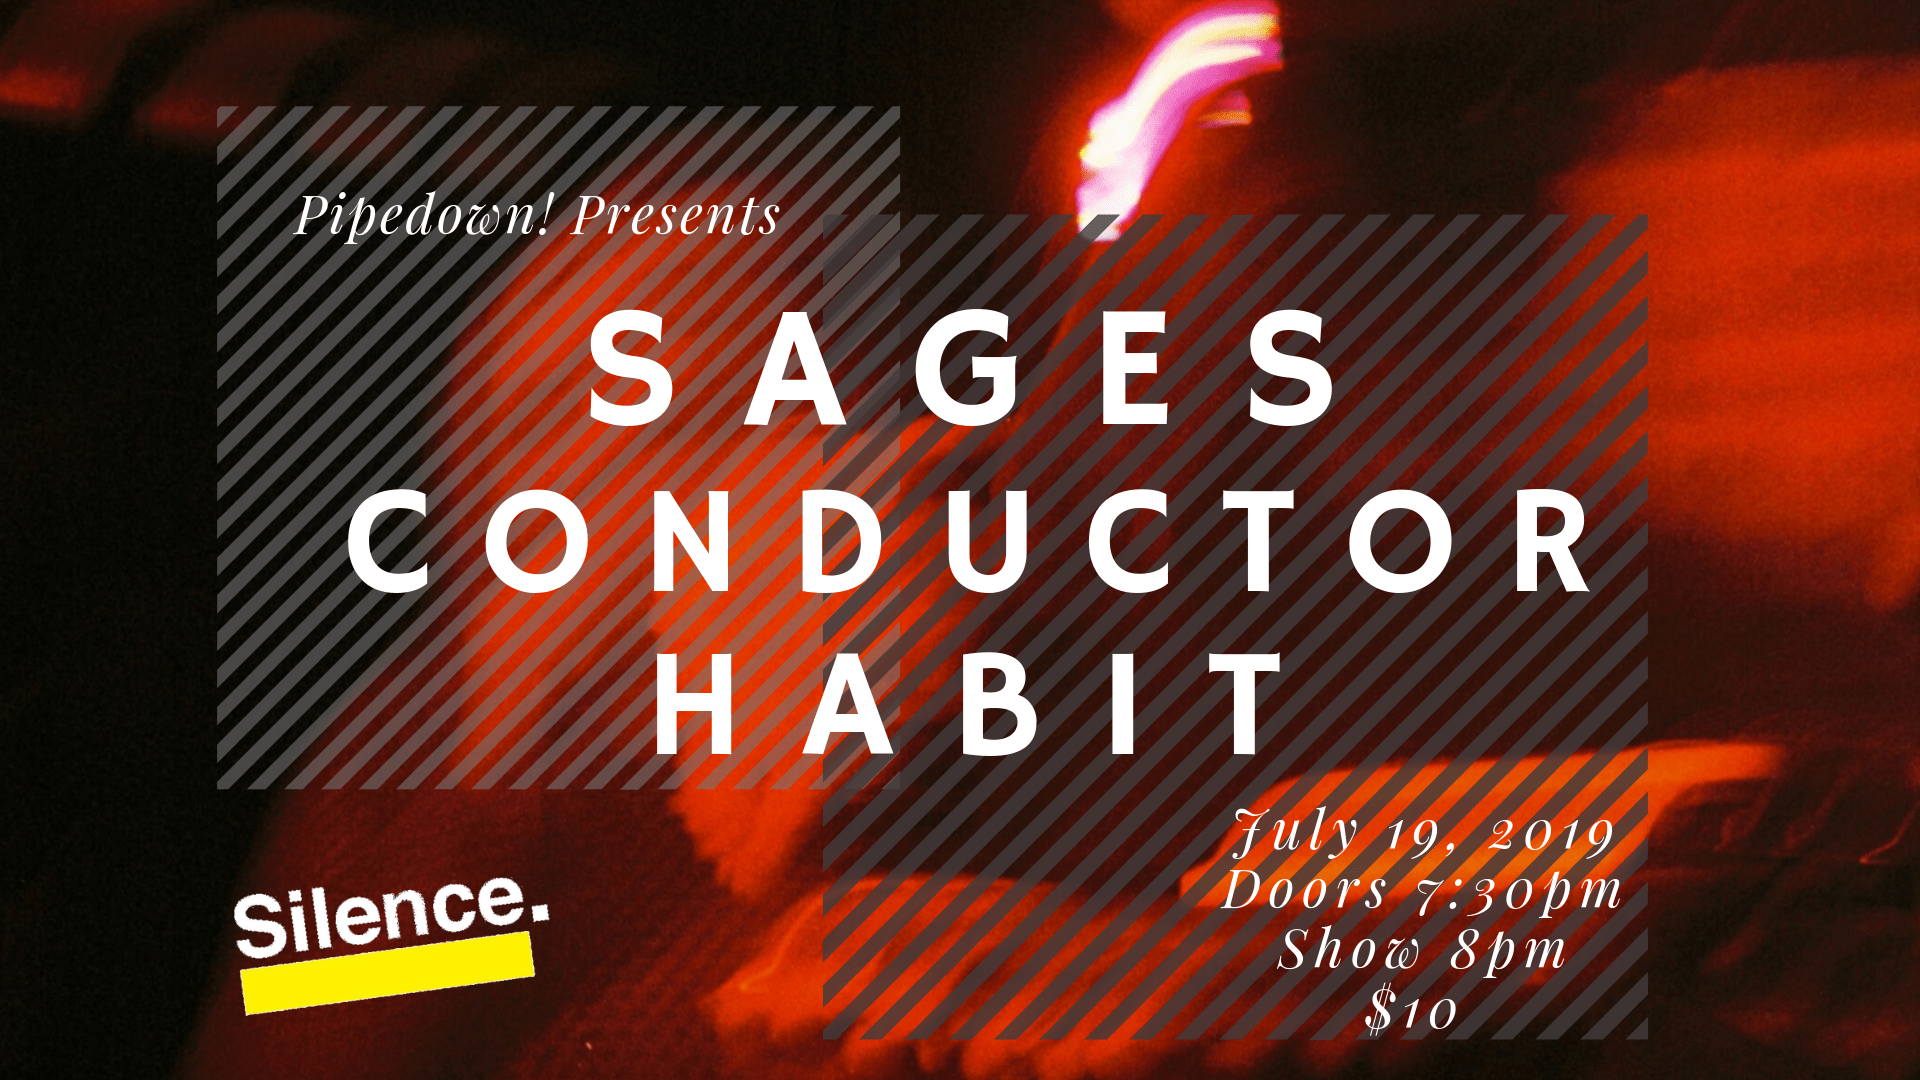 FB Cover Pipedown Sages_Conductor_Habit